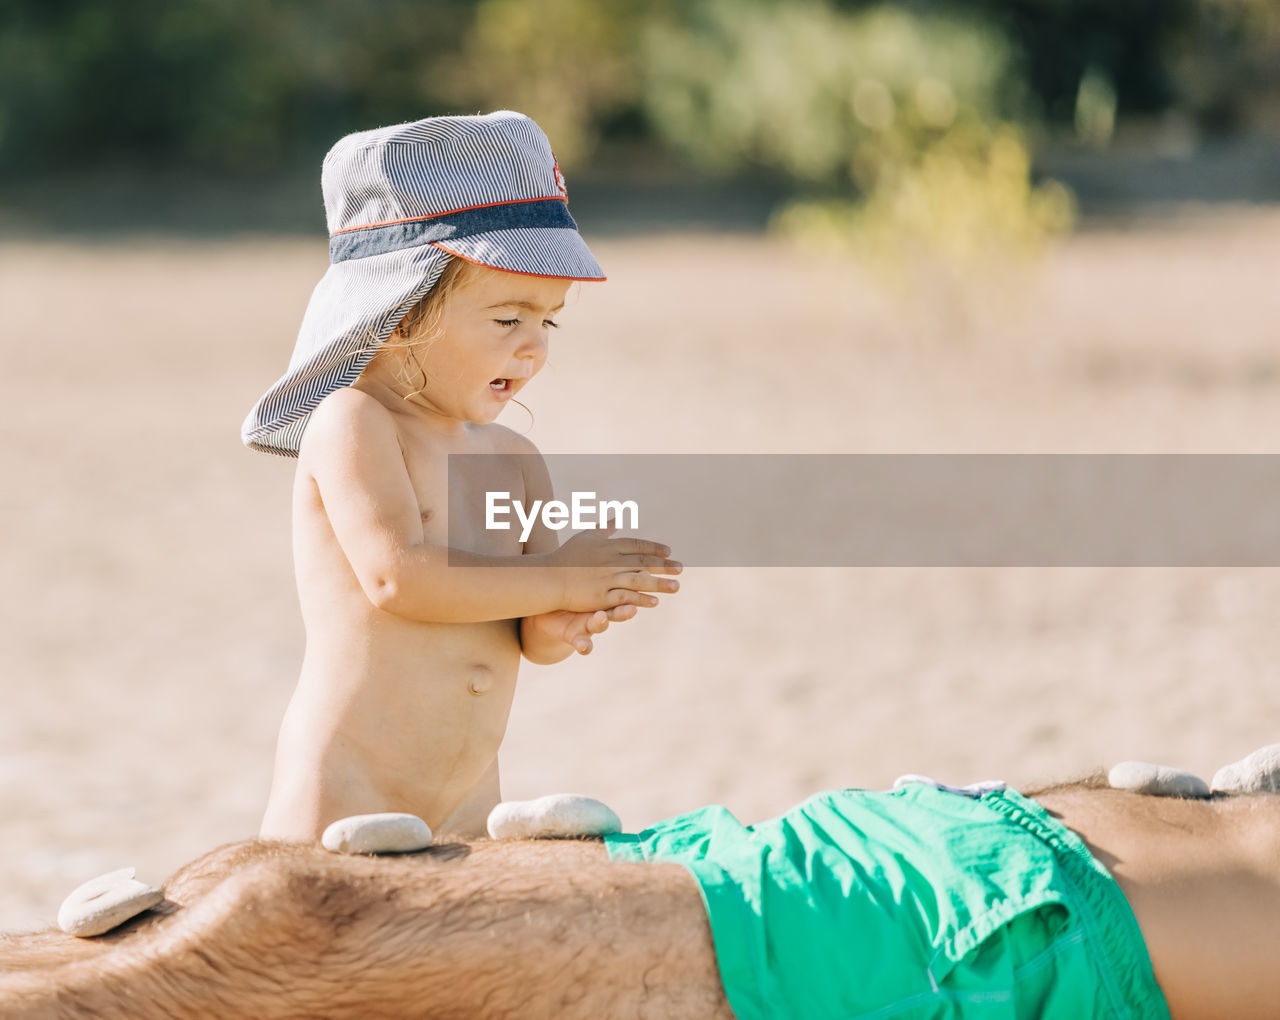 childhood, focus on foreground, child, day, males, land, shirtless, real people, boys, three quarter length, leisure activity, men, side view, clothing, summer, looking, nature, water, beach, outdoors, innocence